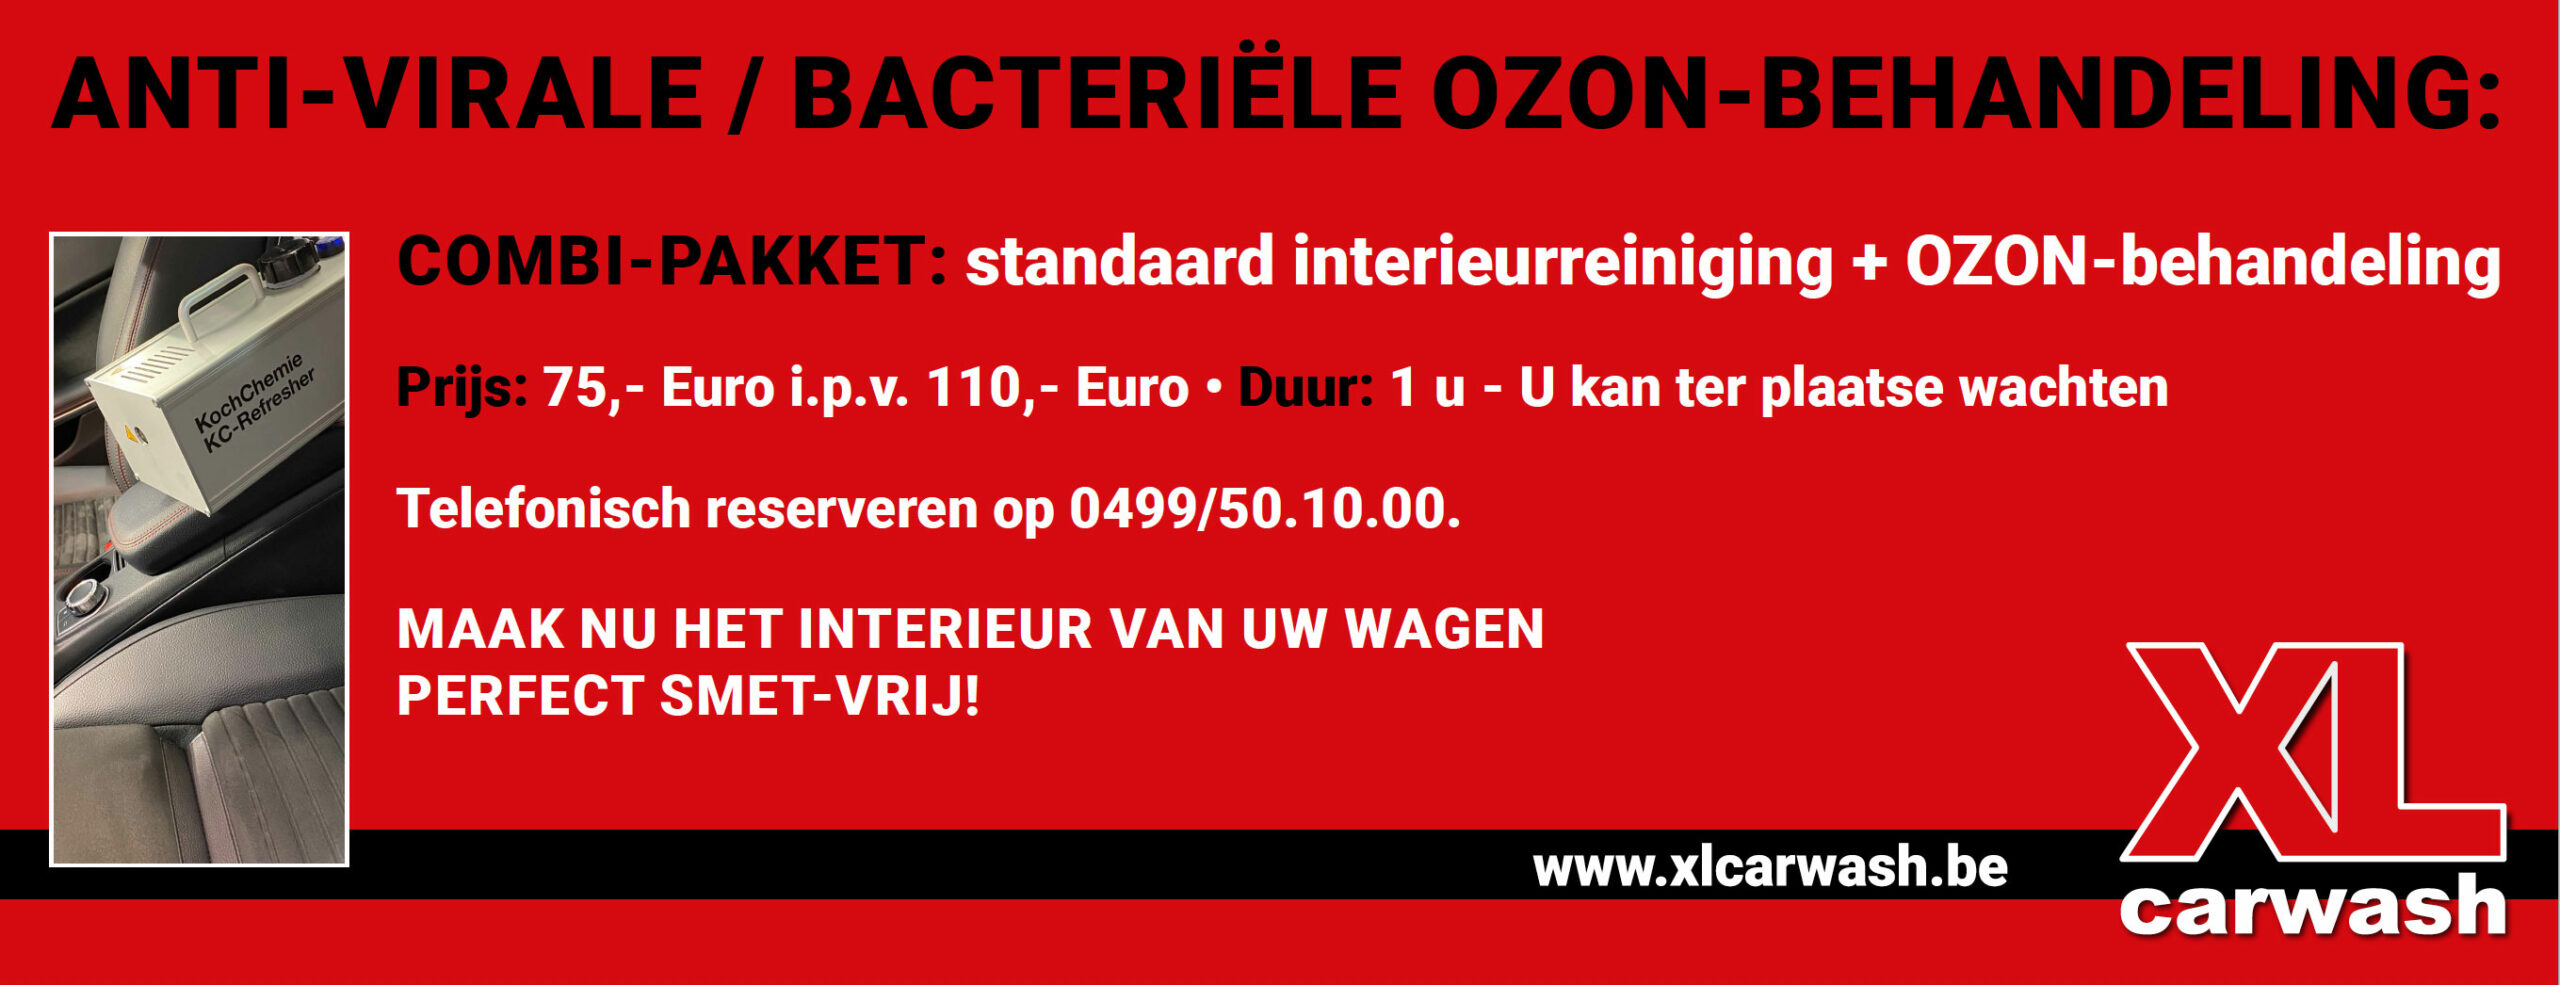 XL-Carwash-anti-virale-bacteriele-ozon-behandeling